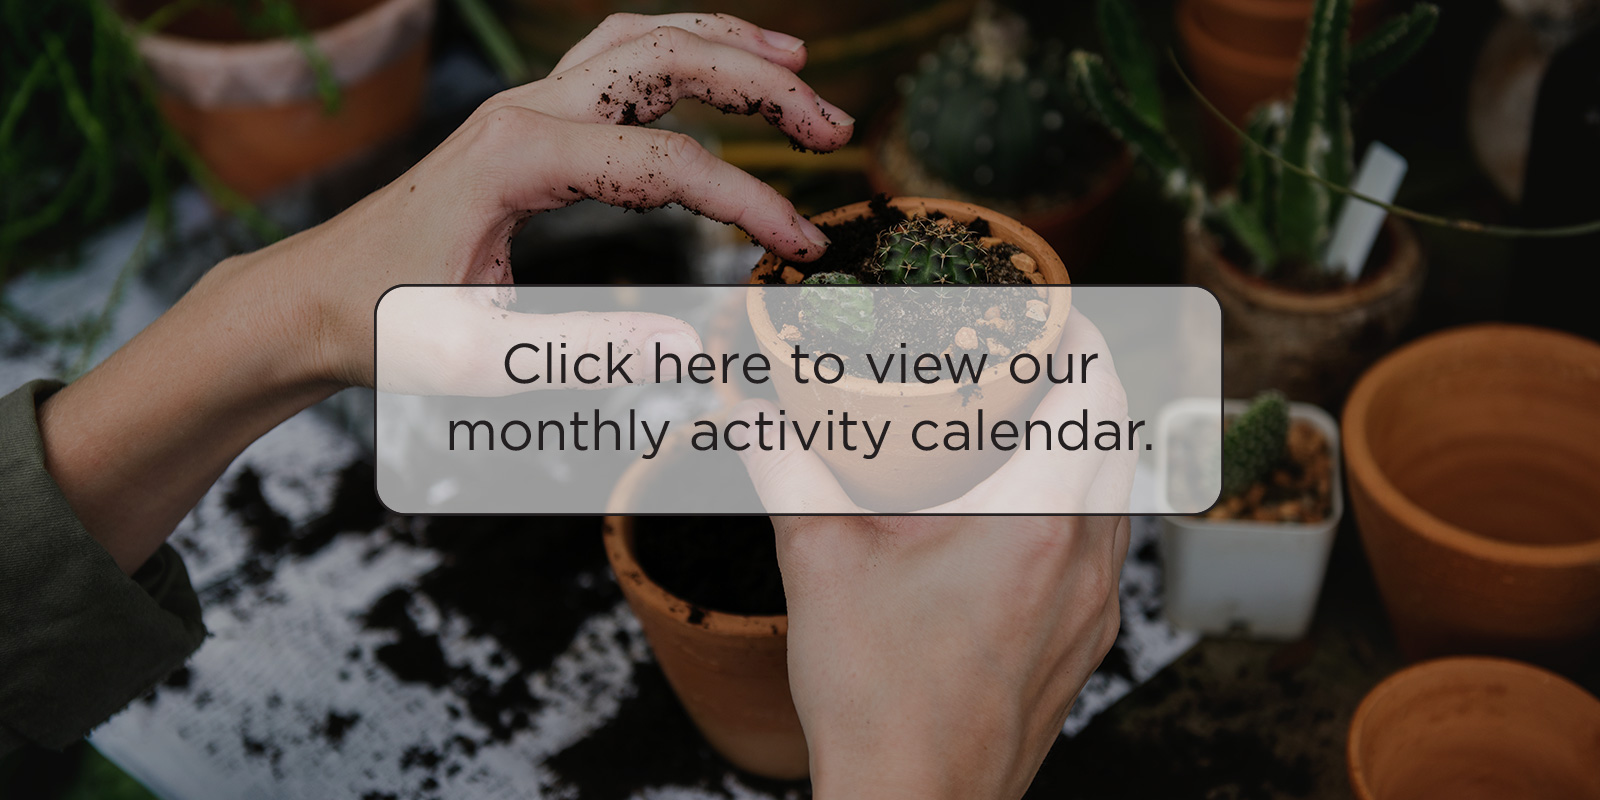 Click here to view our monthly activity calendar button.